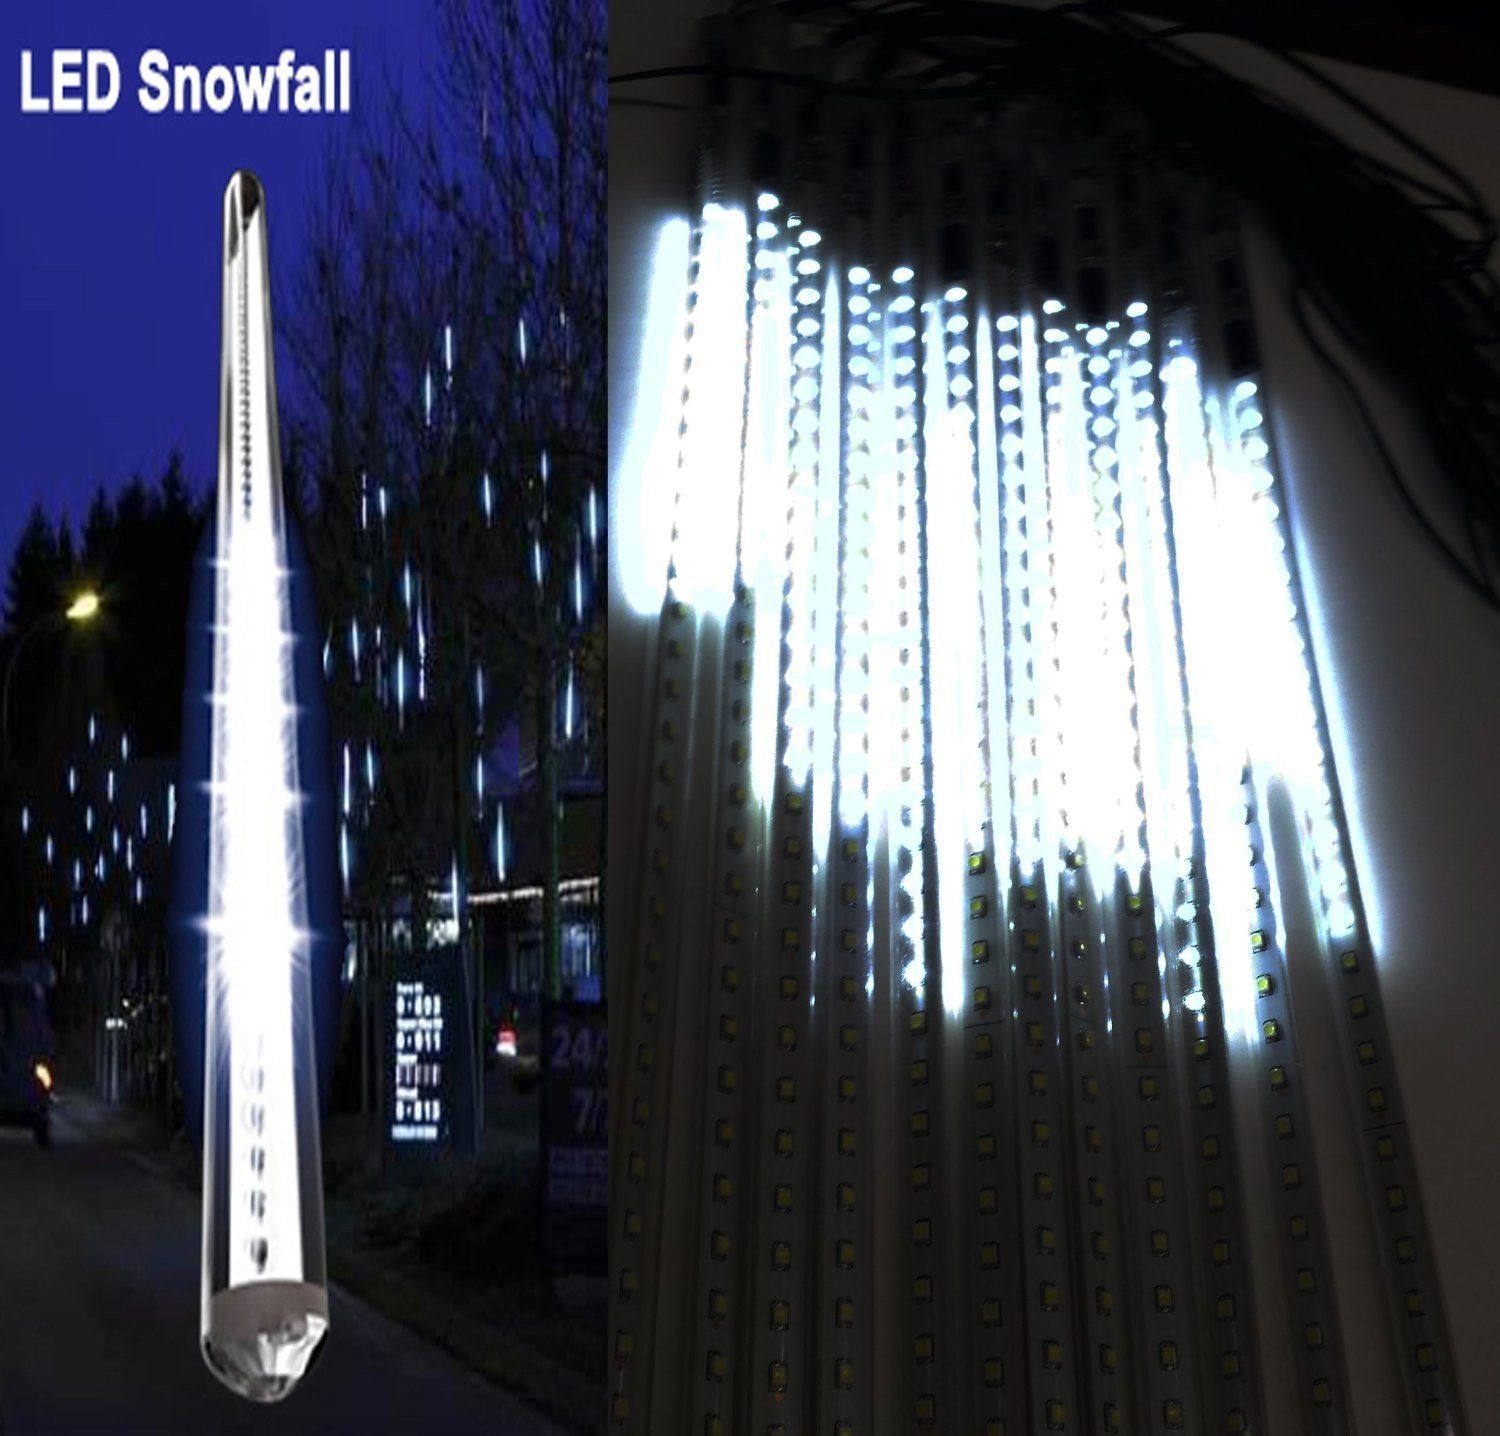 20 Inches Linkable Snow White Led Snowfall Lights Double Sided Wiring Up Outdoor Waterproof Transformer 16ft Wire Extension Set Of 12 Link To 3 Sets Tubes